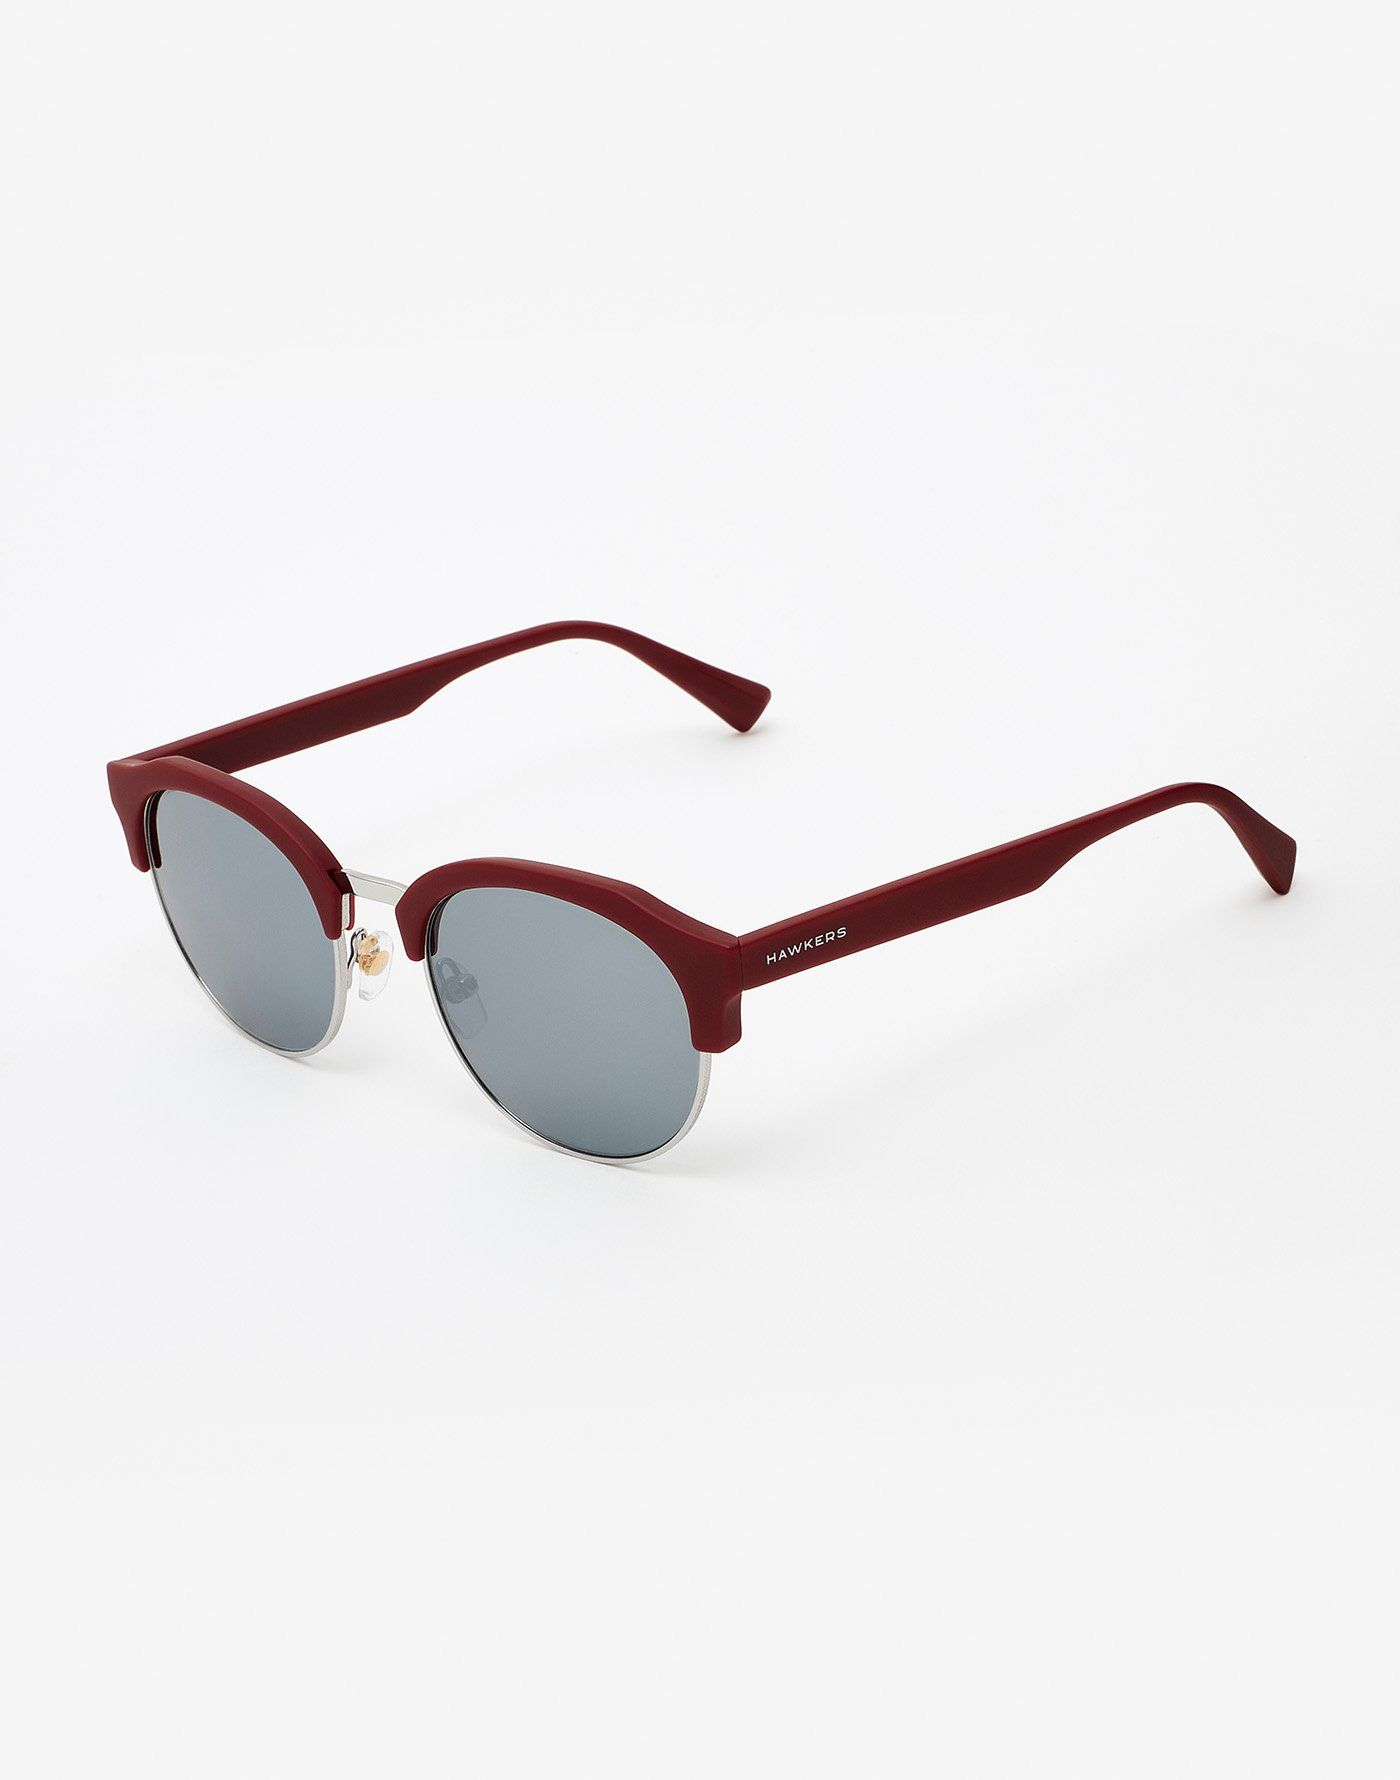 5f1654e6b5 Burgundy Chrome Mujer · Sol Classic Rounded In 2019Gafas De rxodeCWB